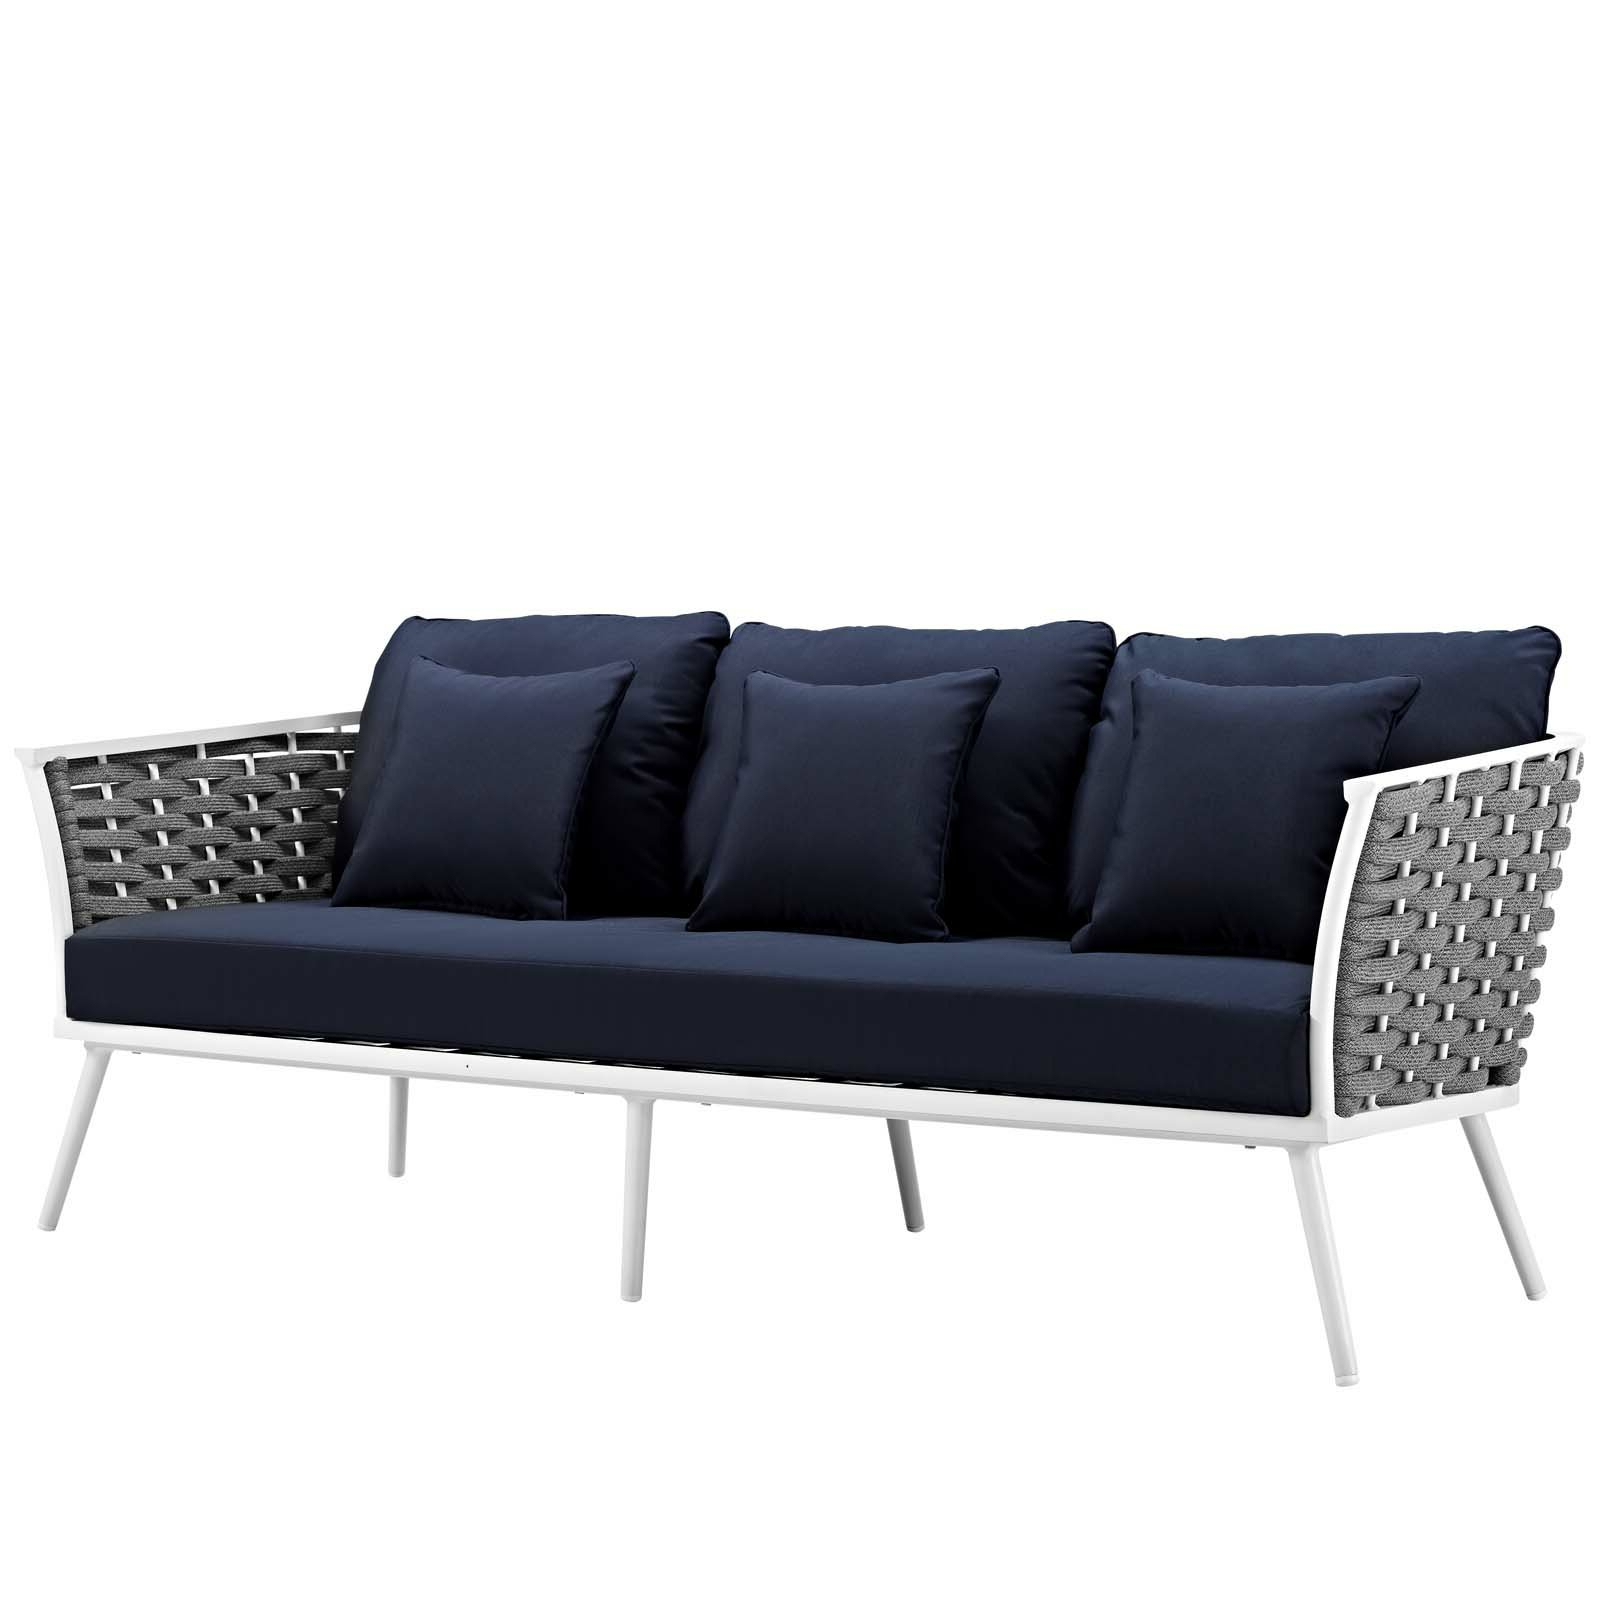 Best And Newest O'kean Teak Patio Sofas With Cushions In Rossville Outdoor Patio Sofa With Cushions (View 4 of 25)